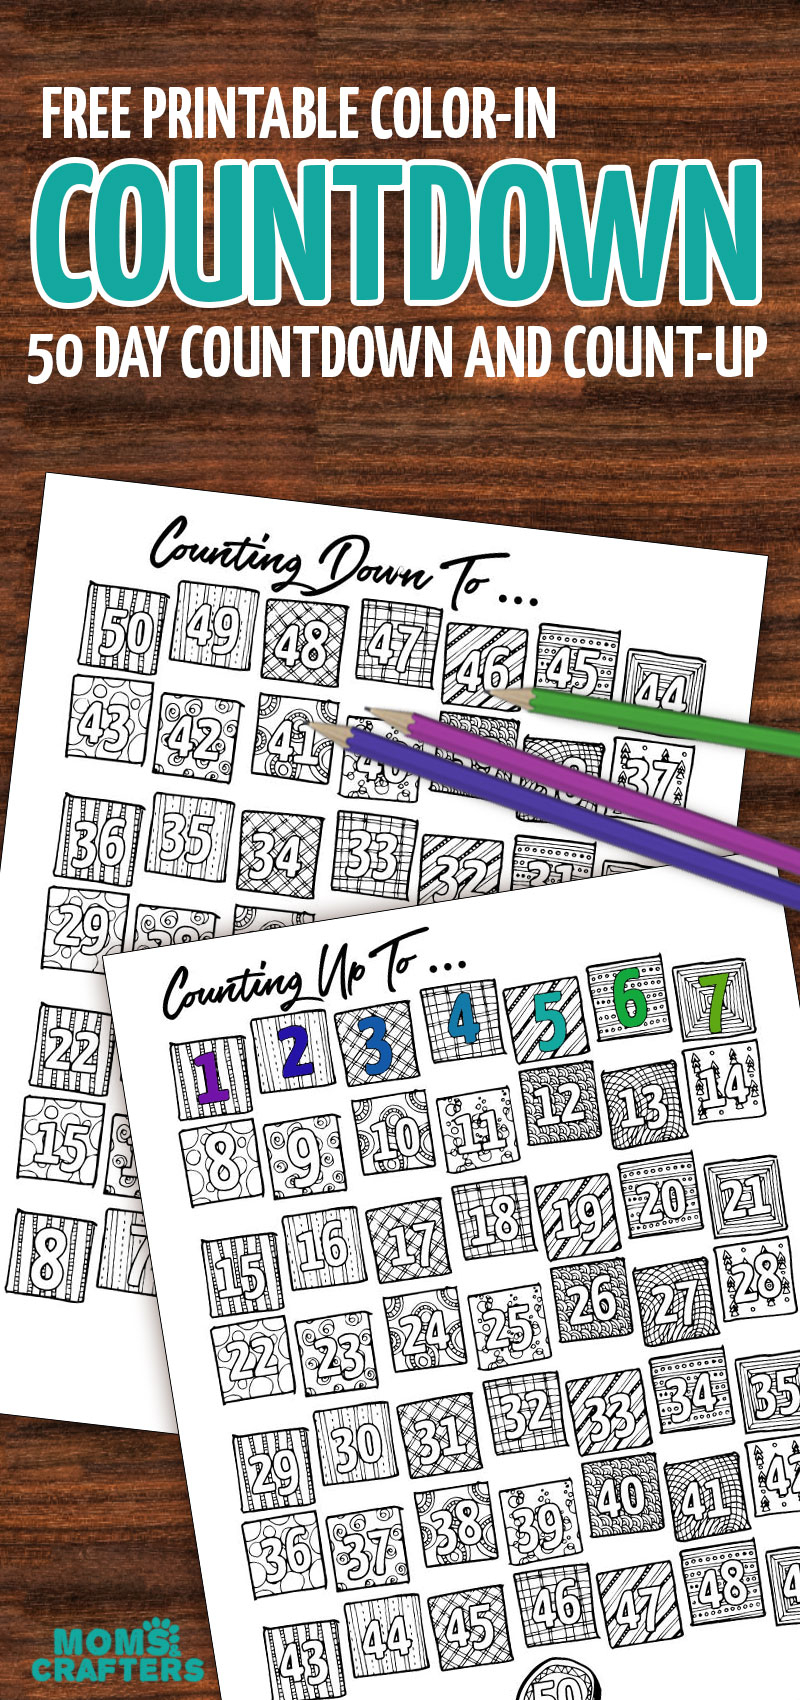 Printable Countdown Calendar And Progress Tracker - Color-In